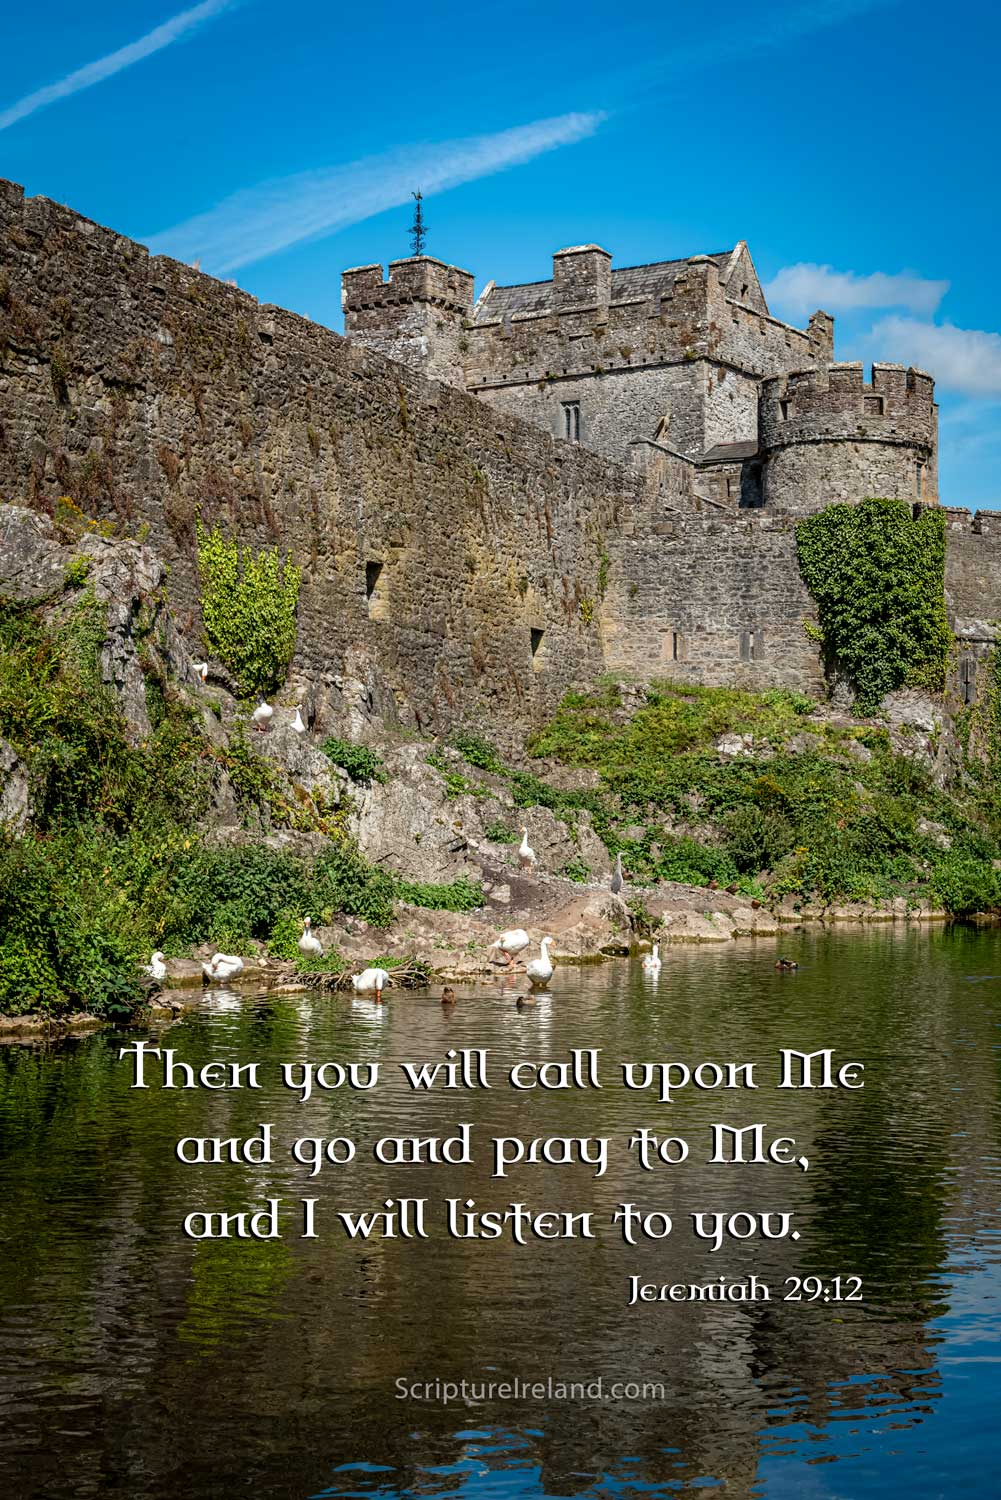 Cahir Castle, County Tipperary